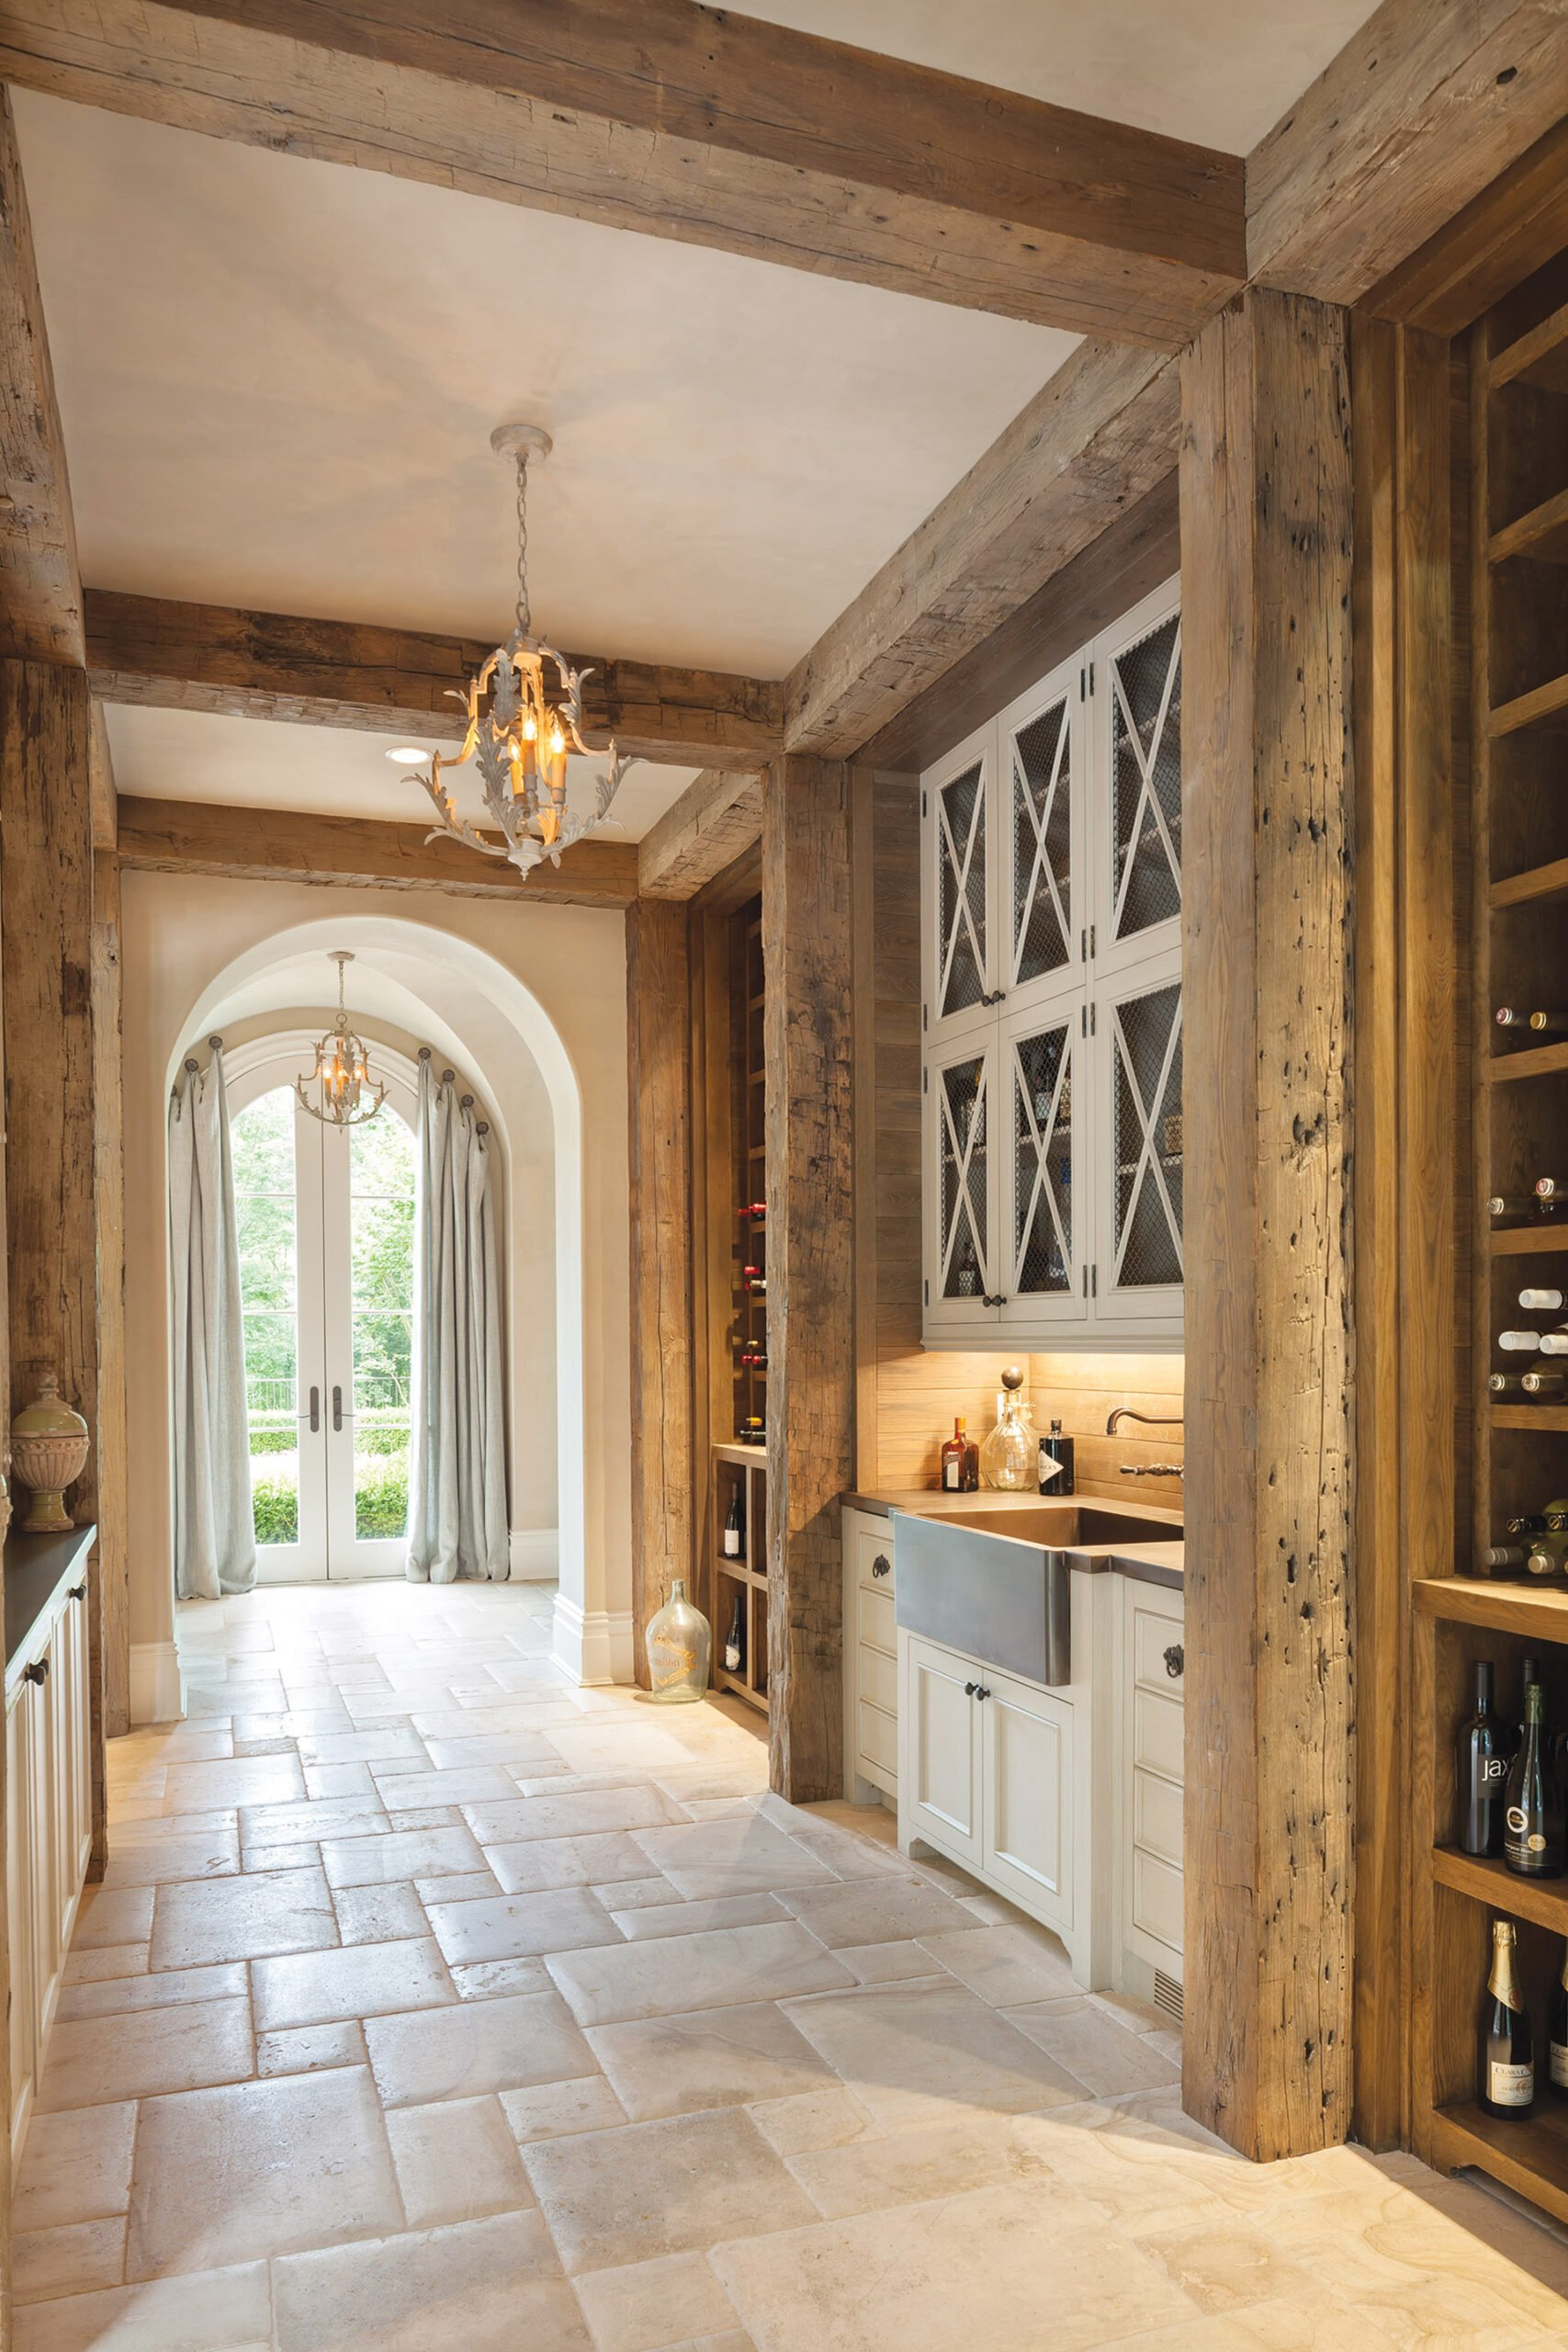 Century-old timbers enliven a bar and wine cellar tucked into a side hall.